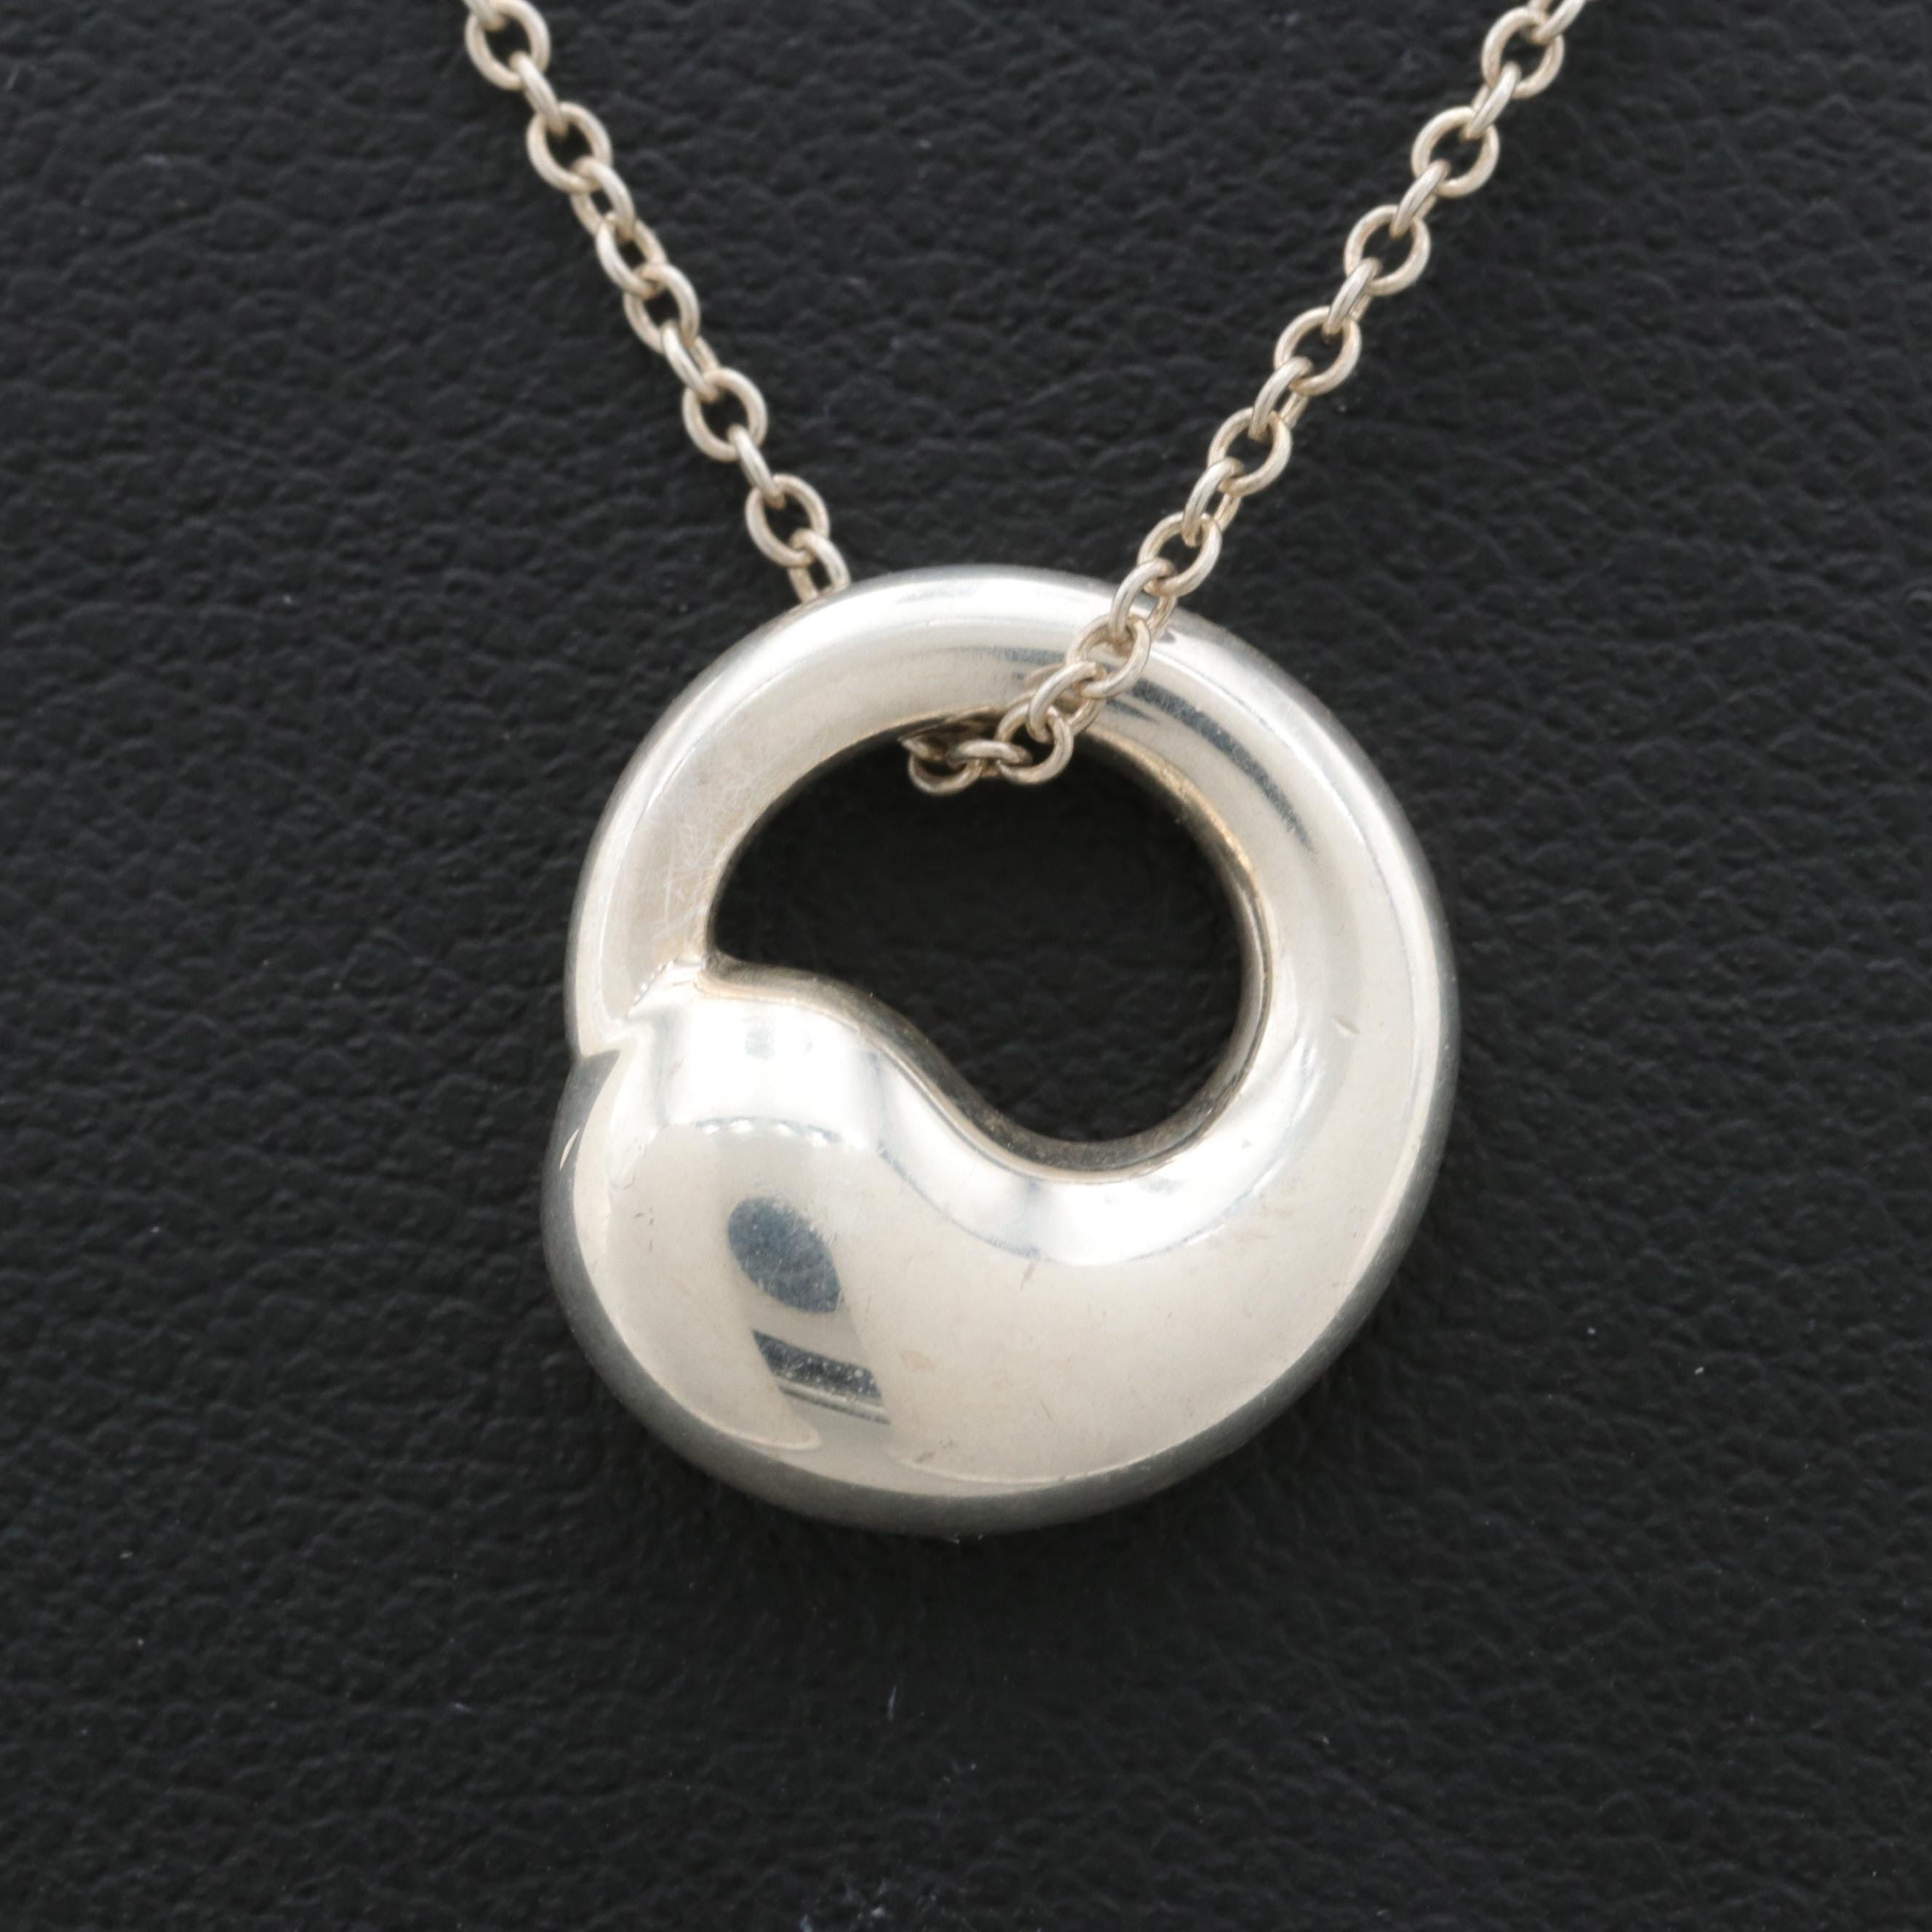 """Elsa Peretti for Tiffany & Co. """"Eternal Circle"""" Sterling Silver Pendant Necklace"""